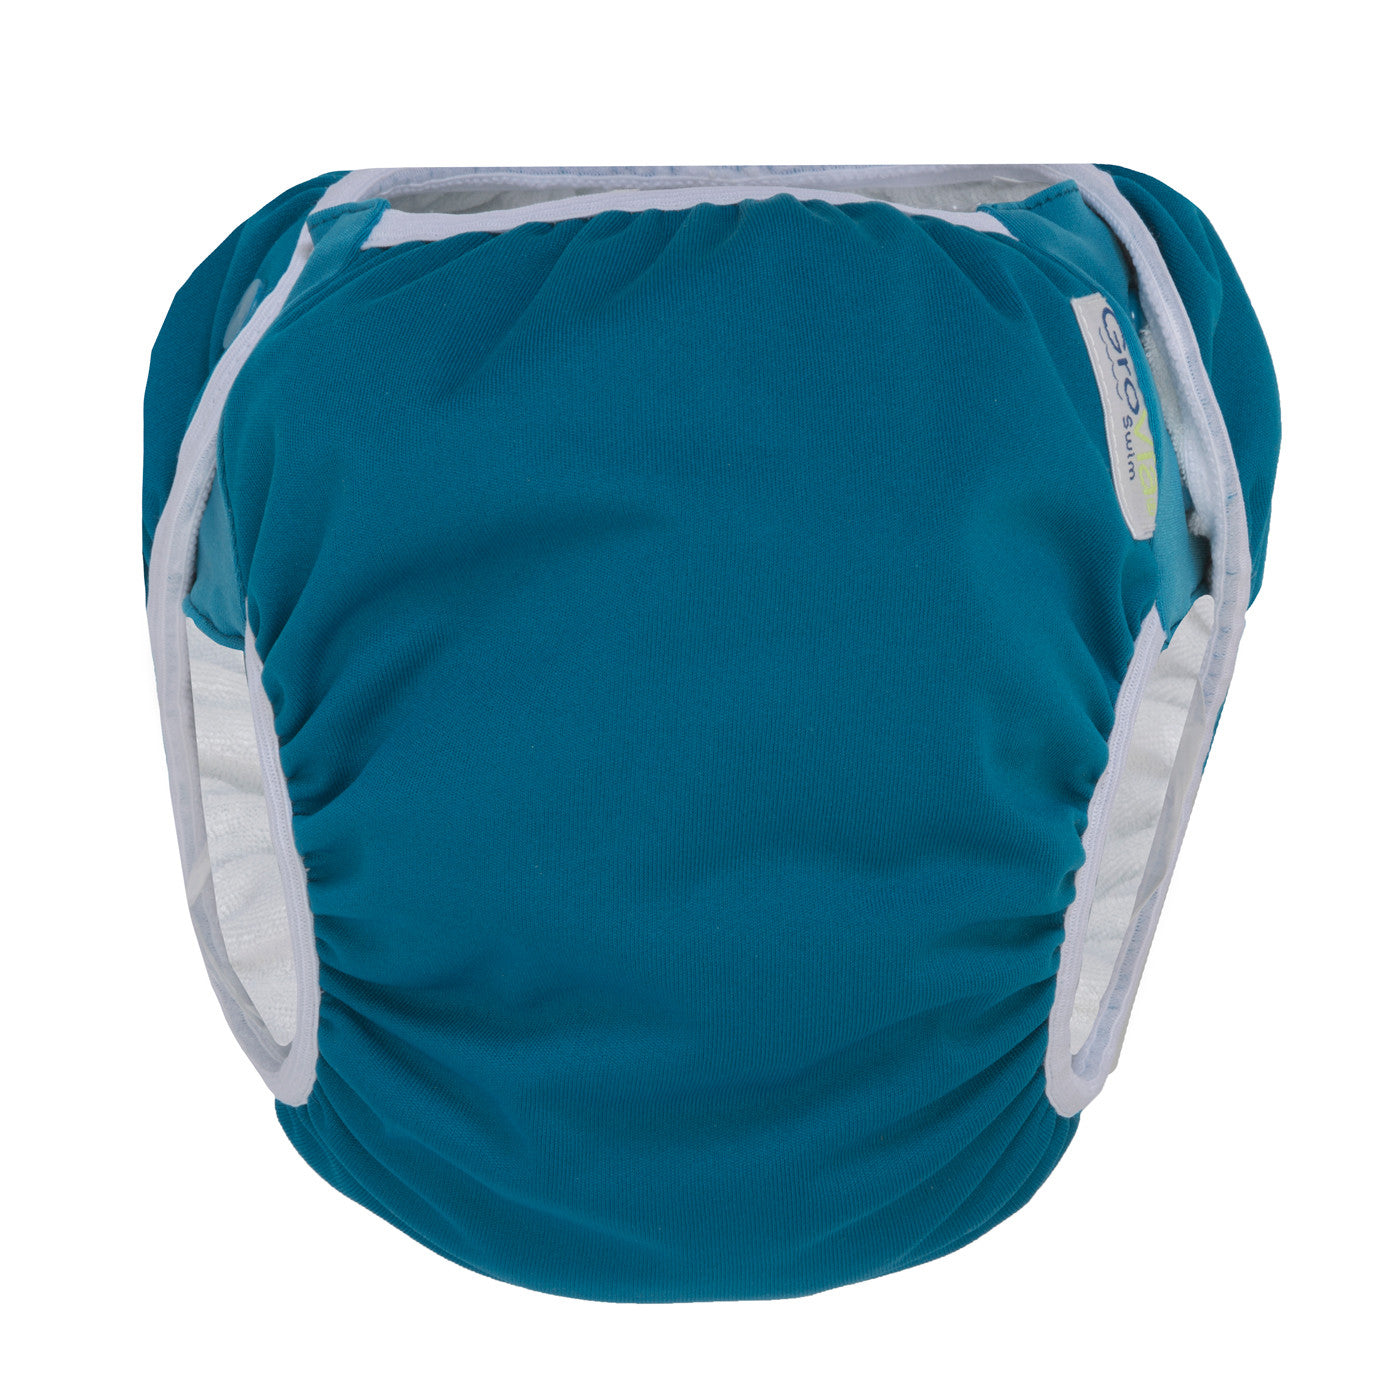 GroVia Swim Diaper - Abalone - Crunch Natural Parenting is where to buy